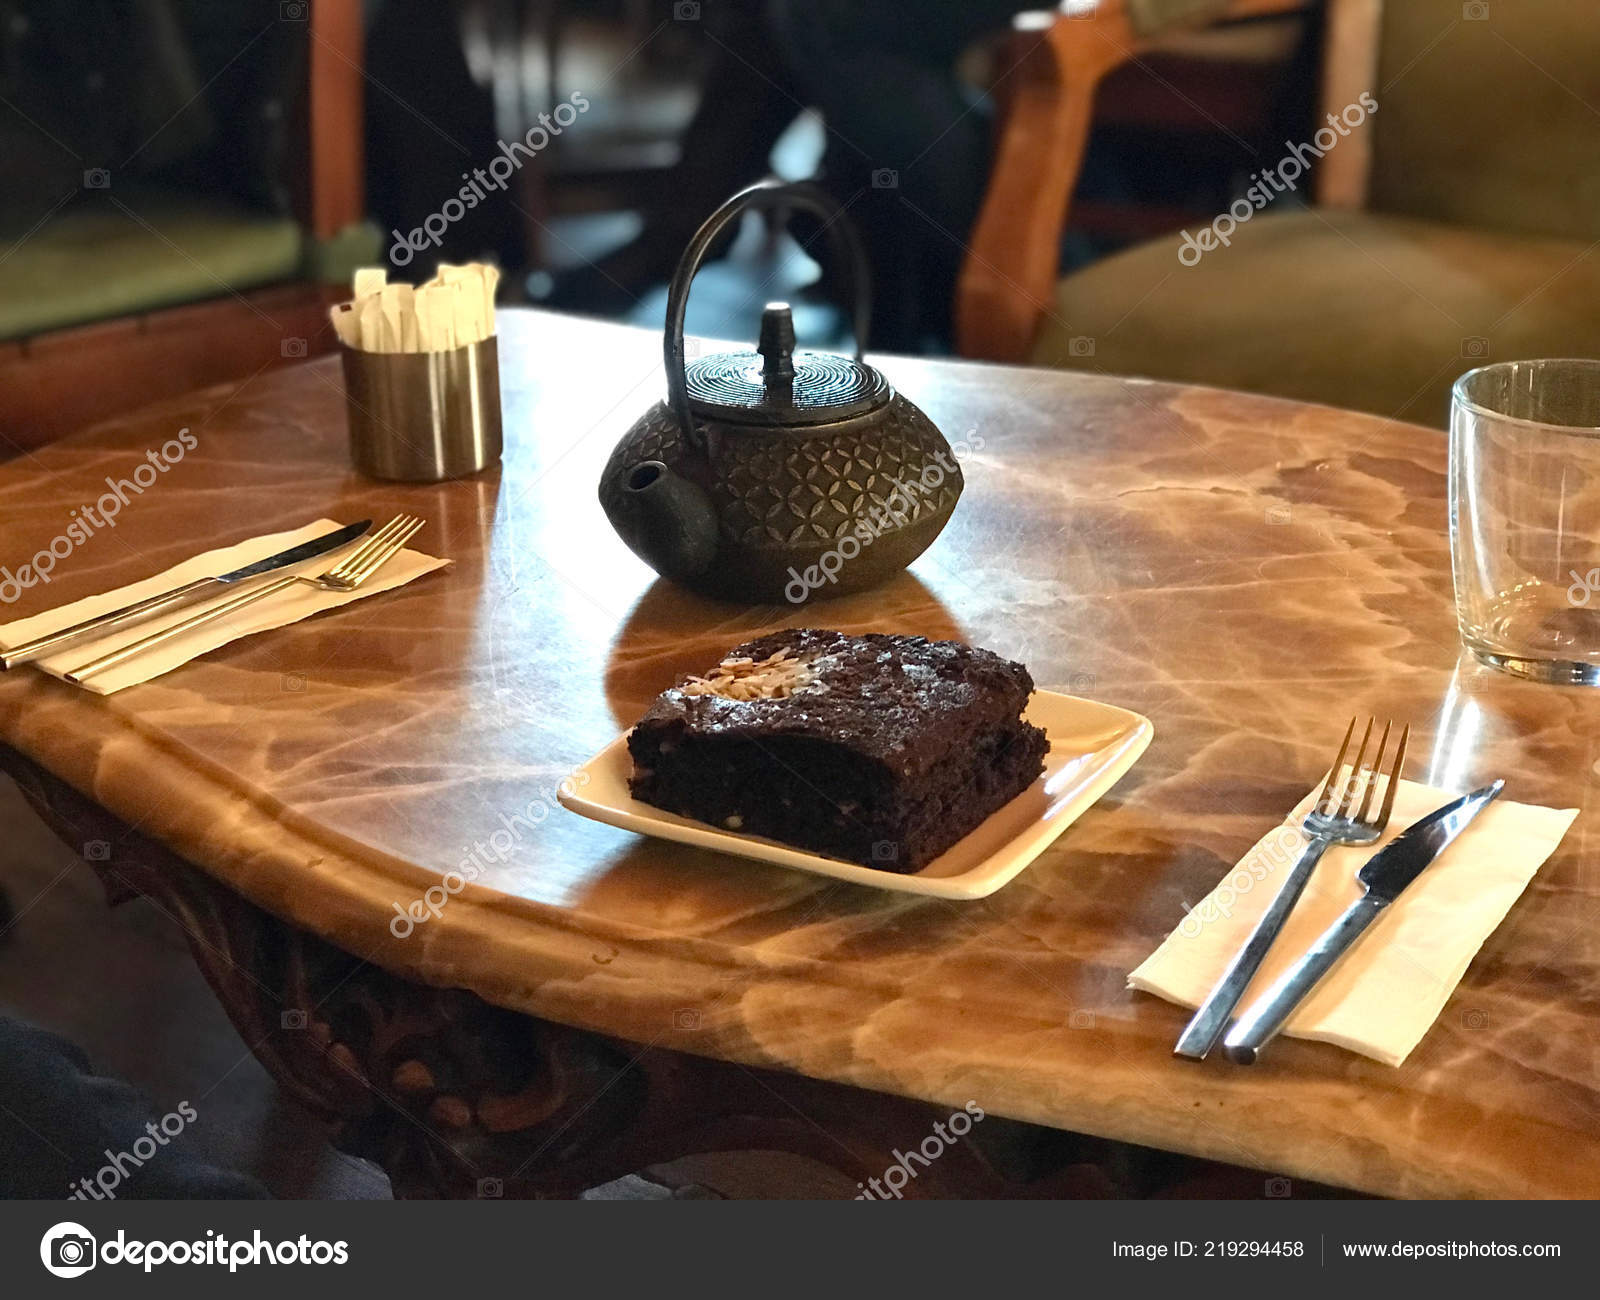 Brownie Served Tea Cafe Restaurant Dessert Concept Stock Photo C Alp Aksoy 219294458